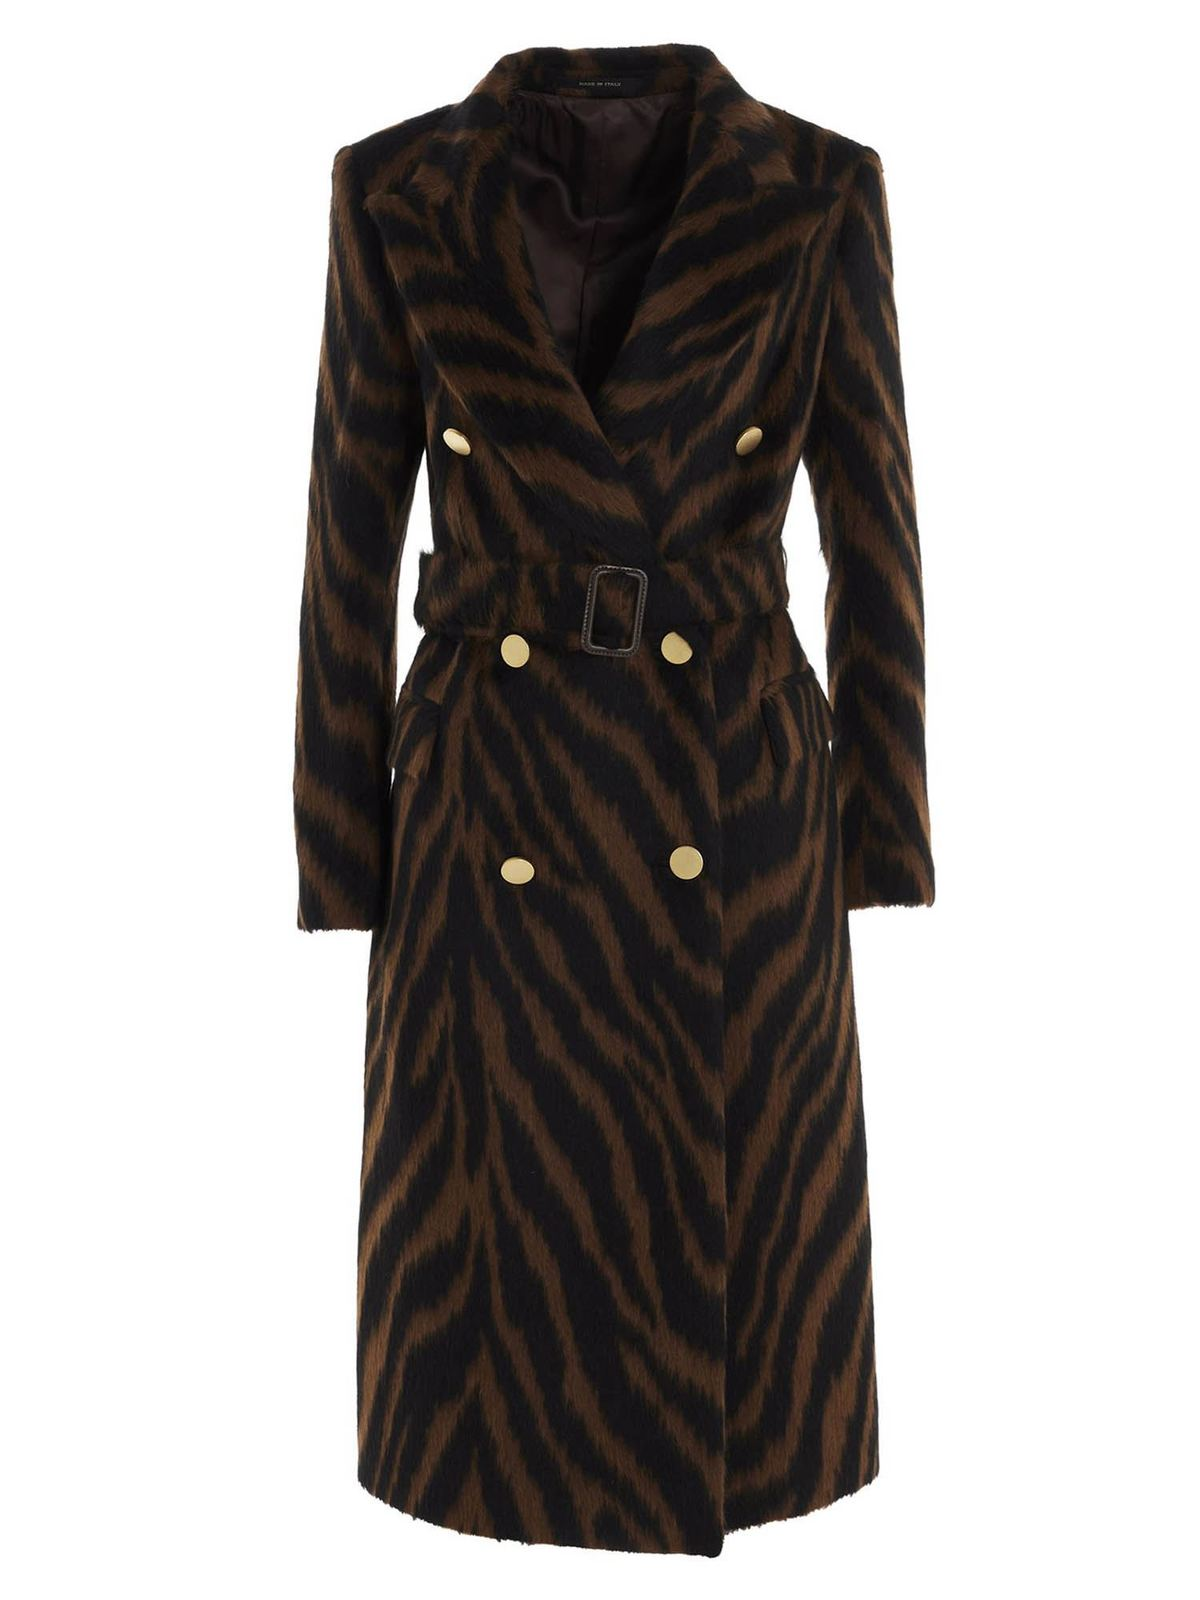 Tagliatore DOUBLE-BREASTED ANIMAL PRINT COAT